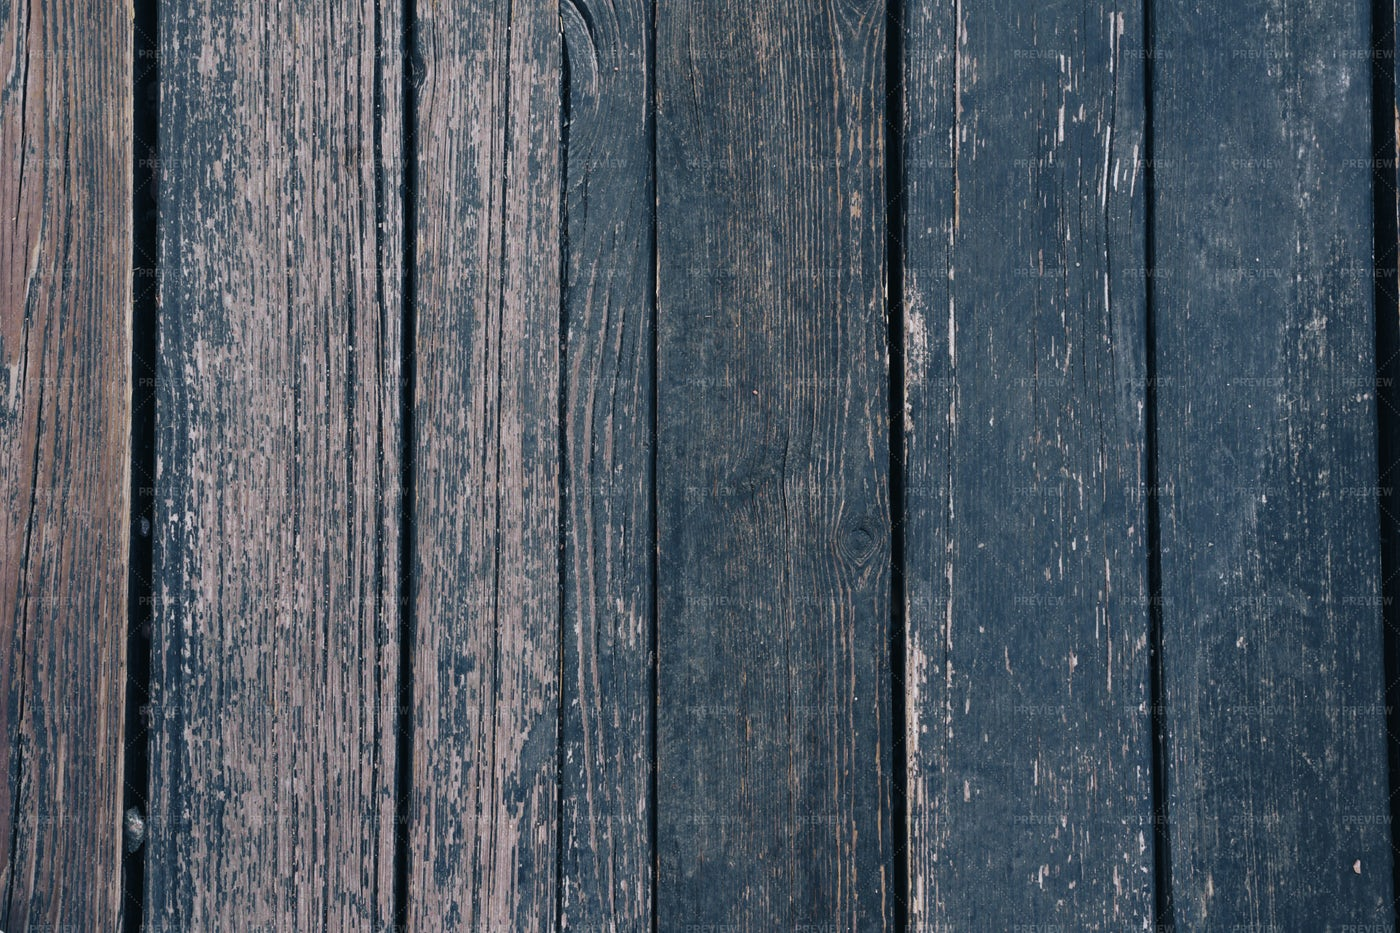 Wooden Plank Background: Stock Photos